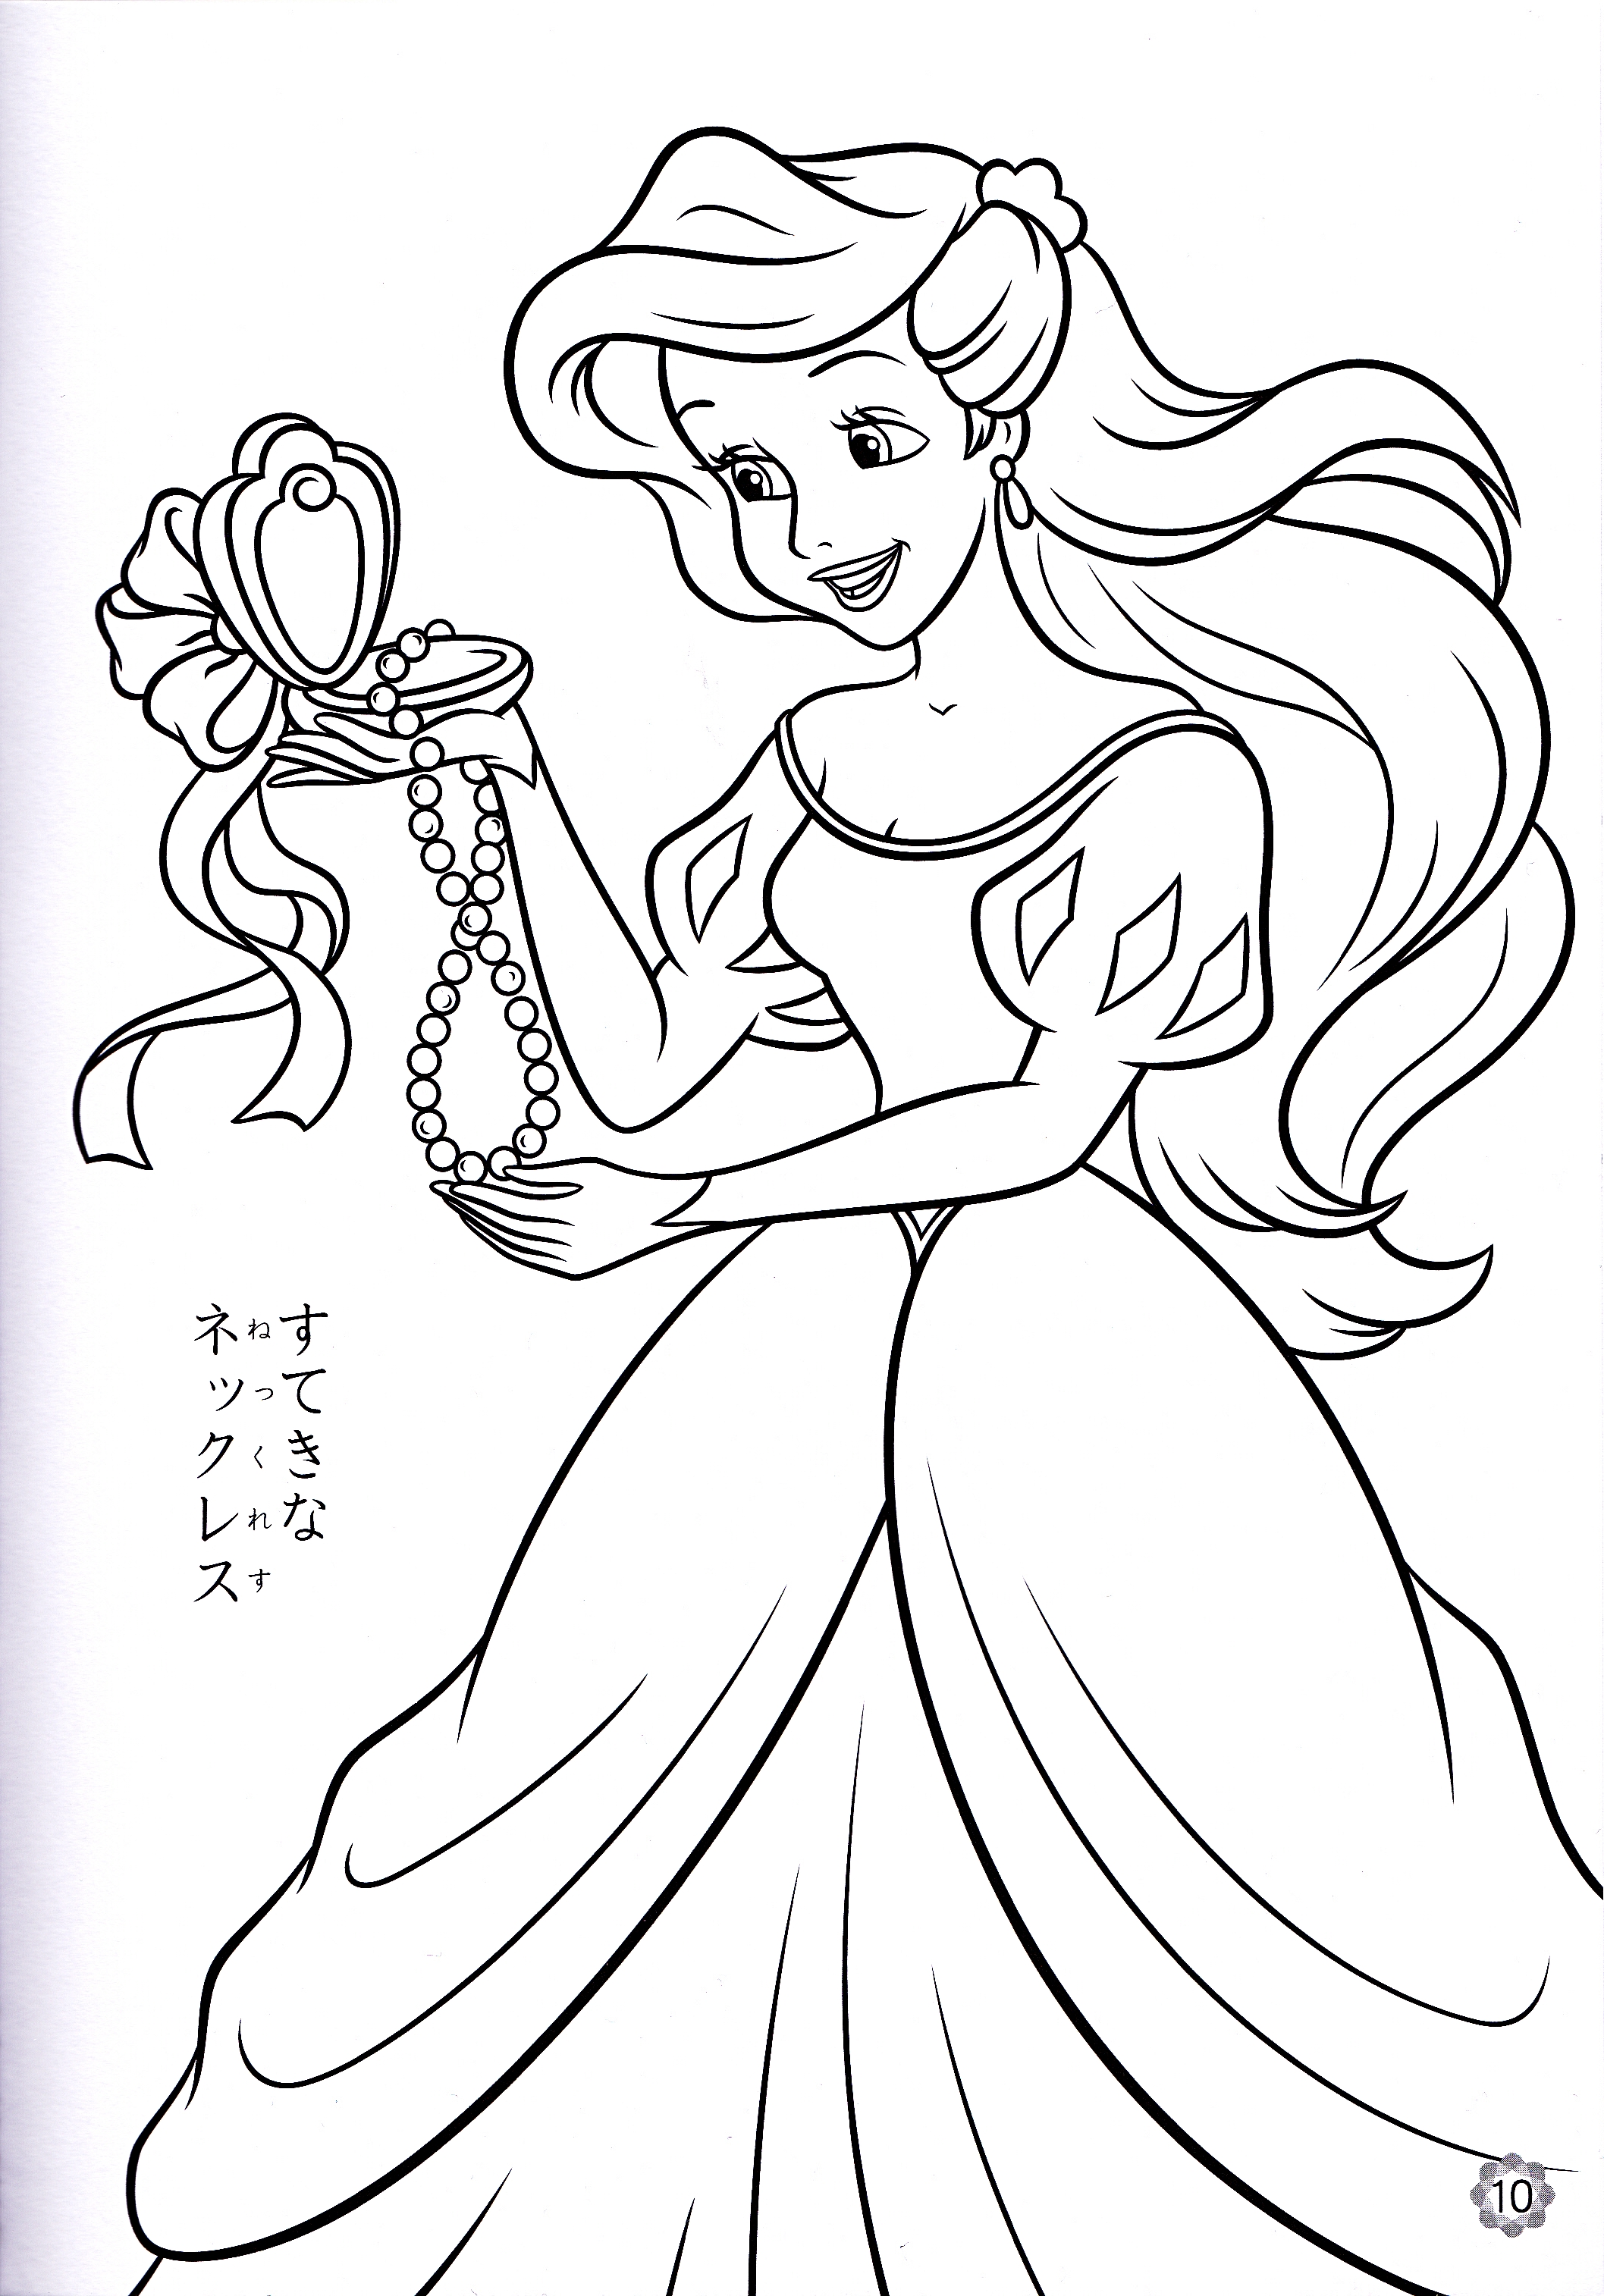 ariel disney coloring pages - photo#8